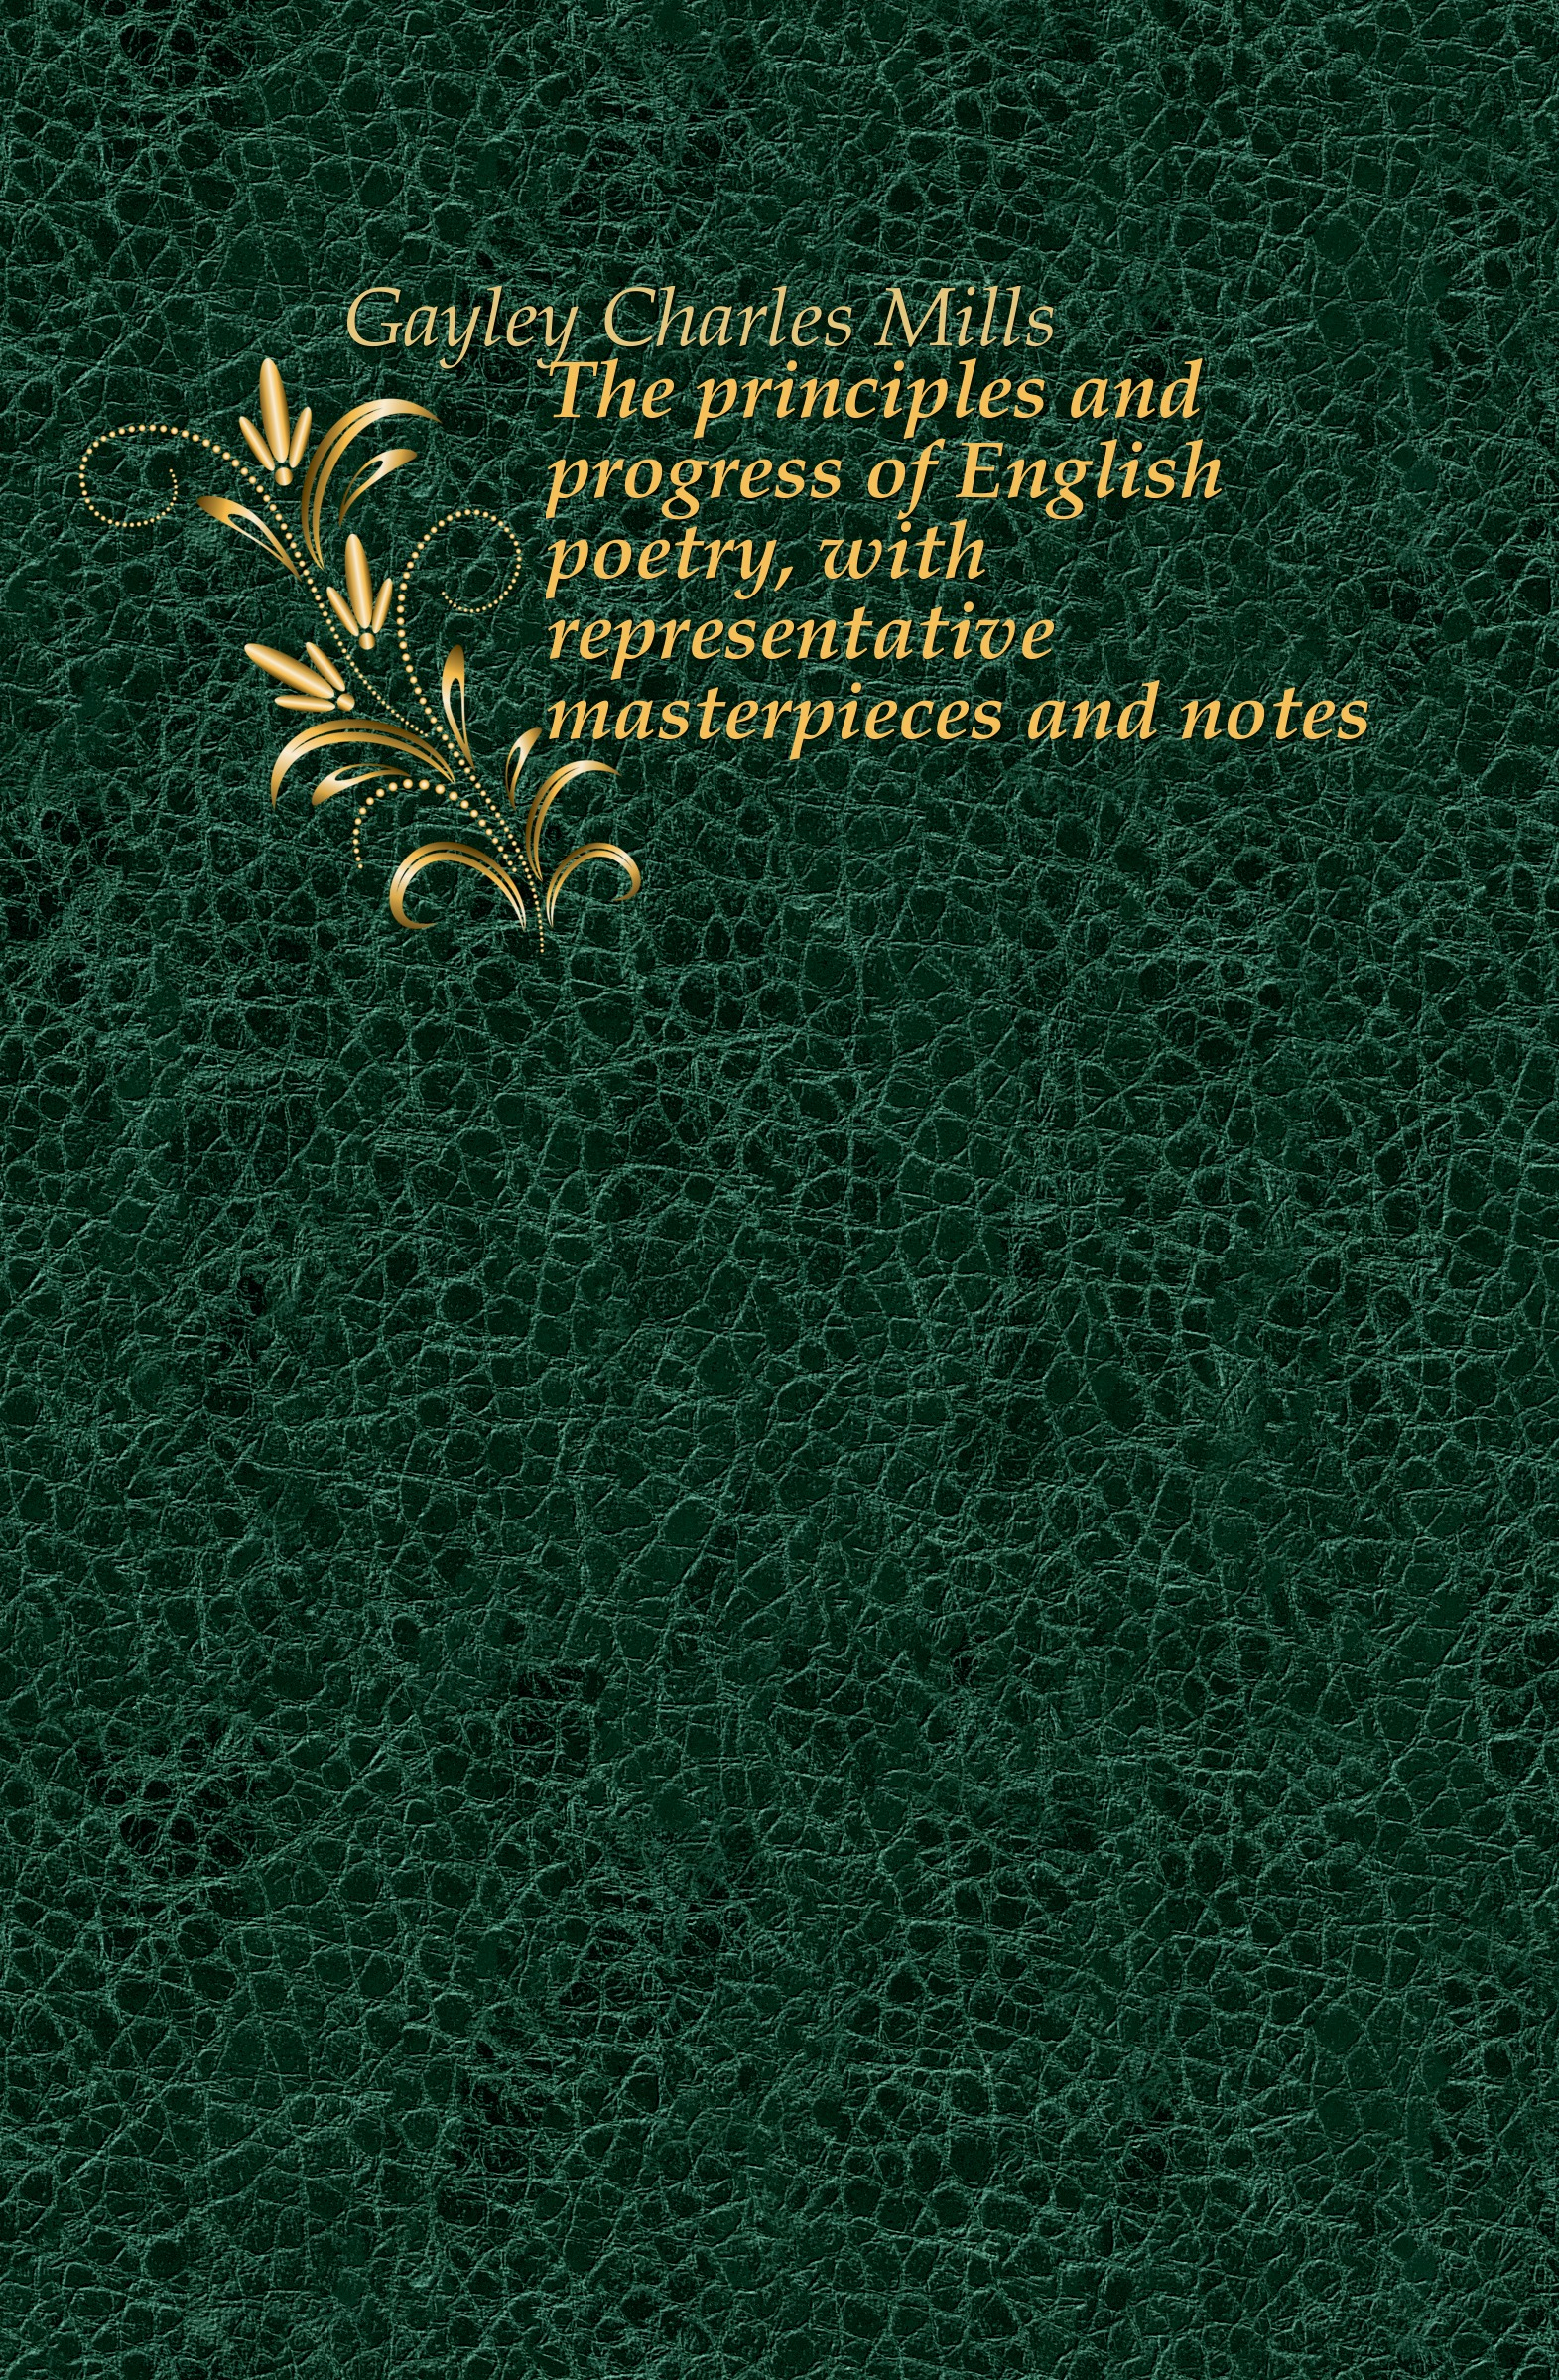 Gayley Charles Mills The principles and progress of English poetry, with representative masterpieces and notes